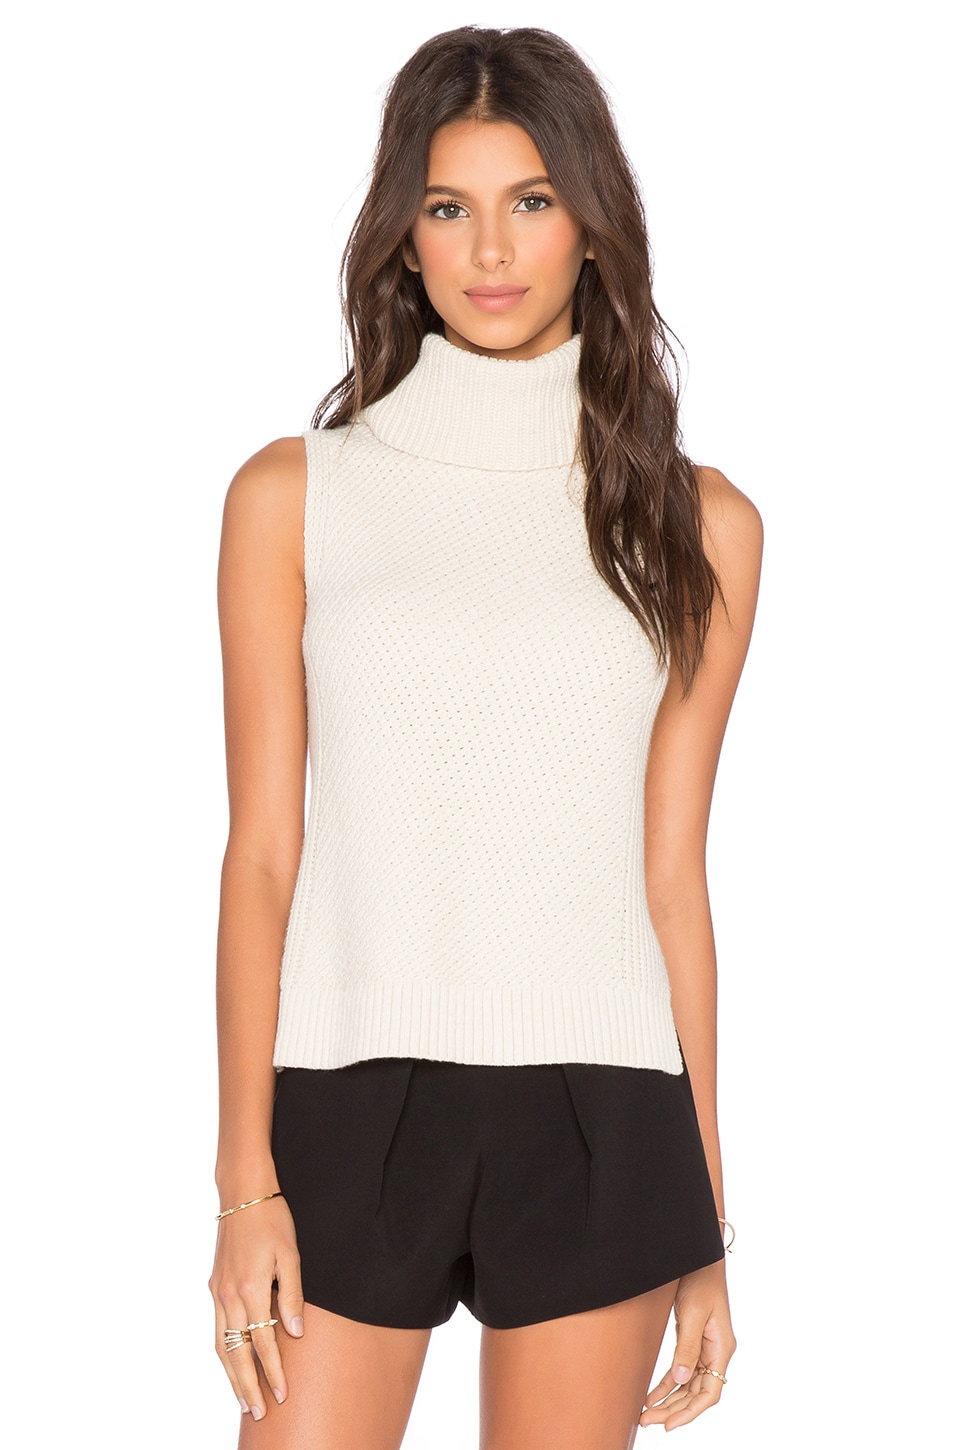 LEO & SAGE Sleeveless Turtleneck Sweater in Winter White | REVOLVE